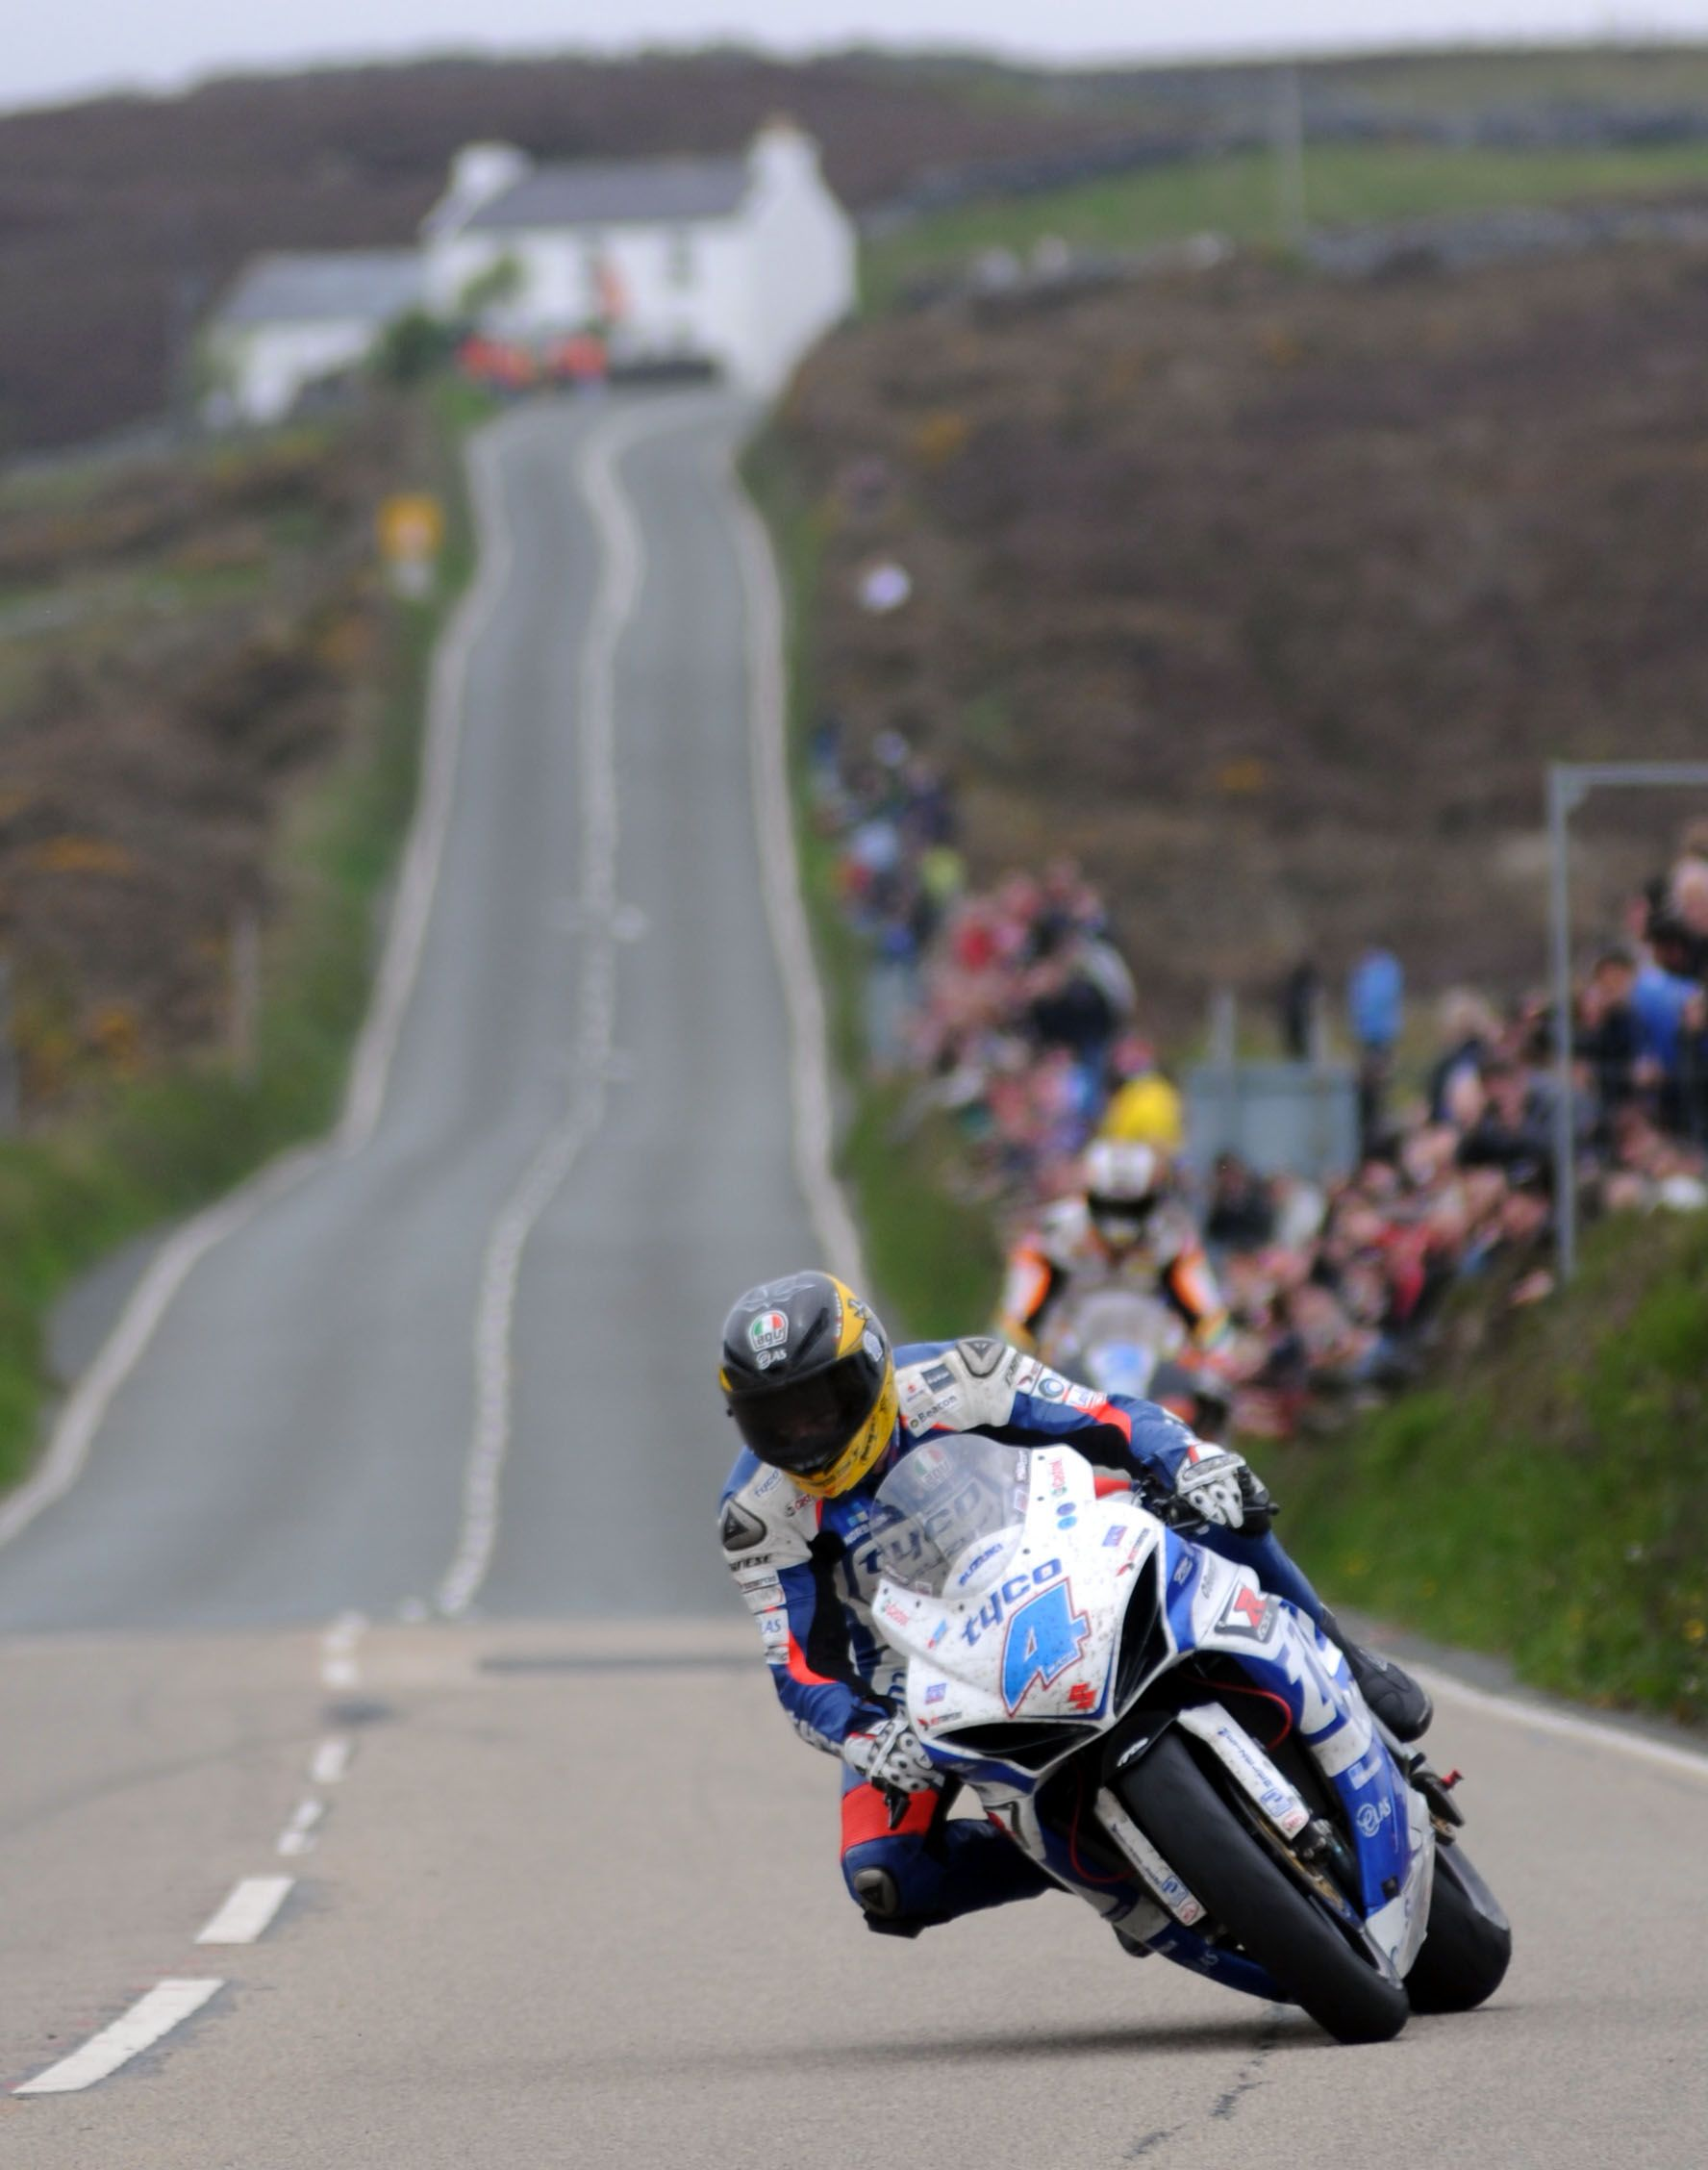 Guy Martin In The Second Supersport Race On His Tyco Suzuki Gsx R600